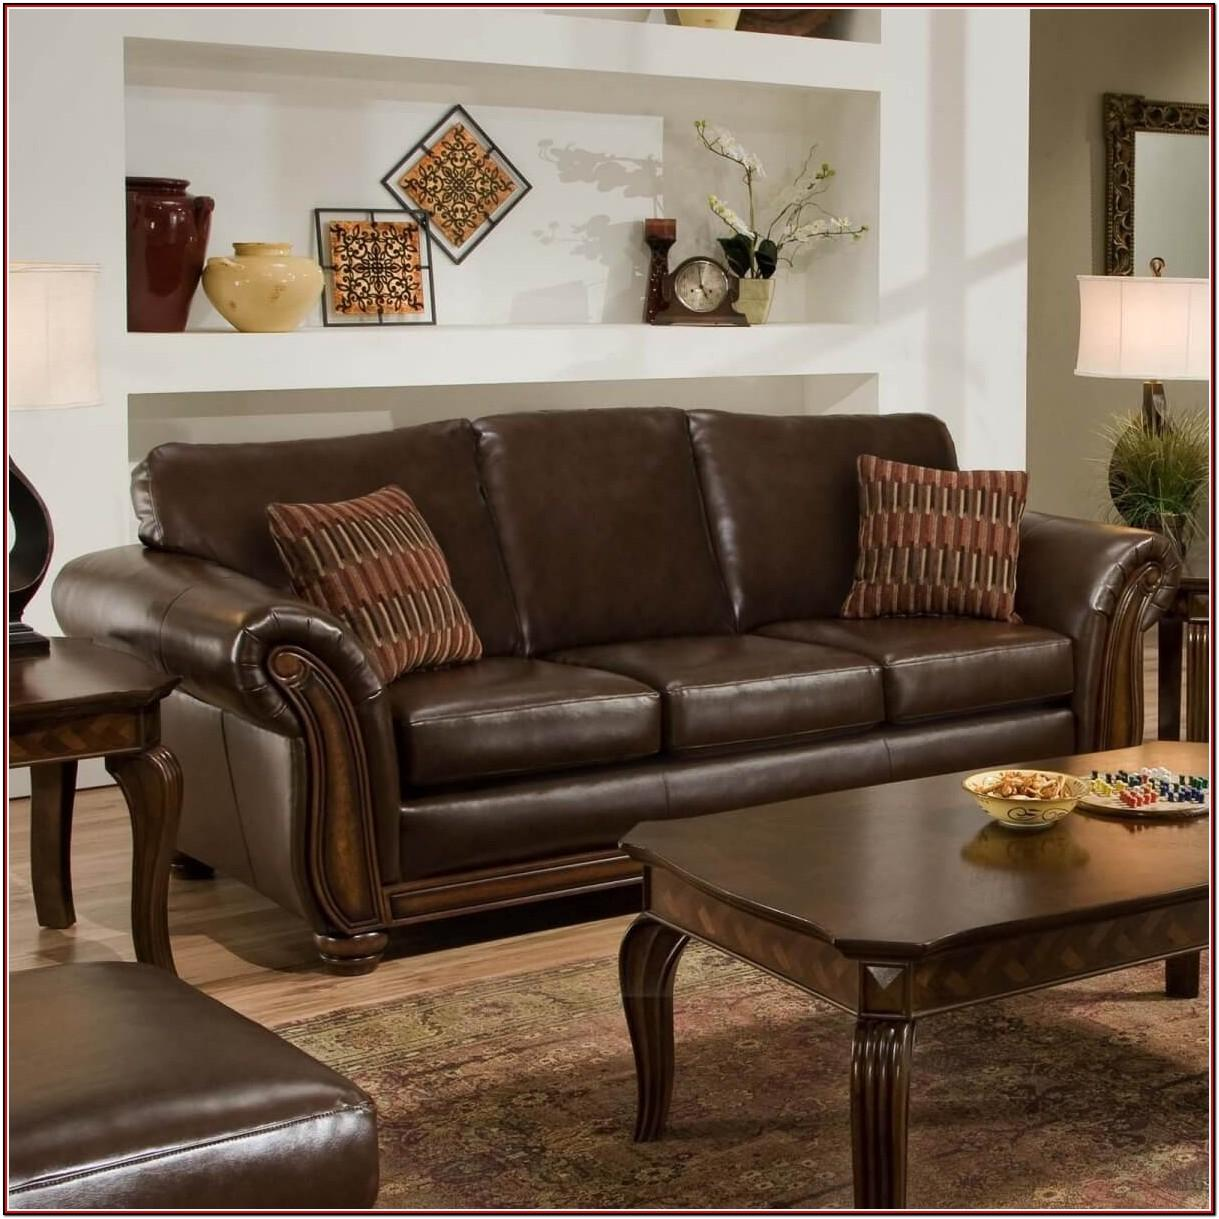 Living Room Decor With Brown Leather Furniture